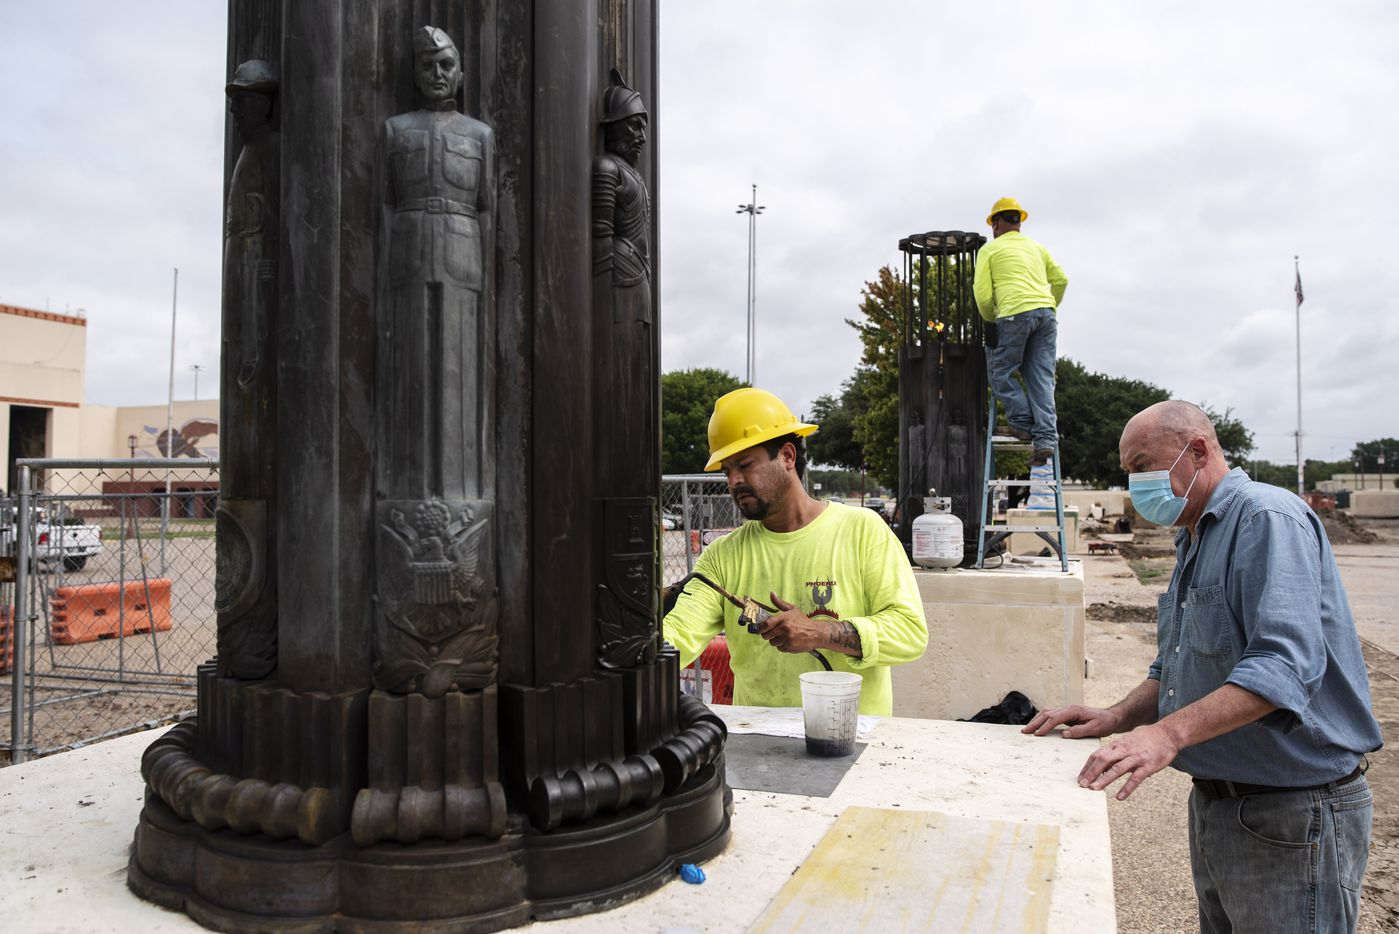 Michael Van Enter, right, watches a contractor working on one of the Torchiere lamps outside the main entrance to the Hall of State at Fair Park.